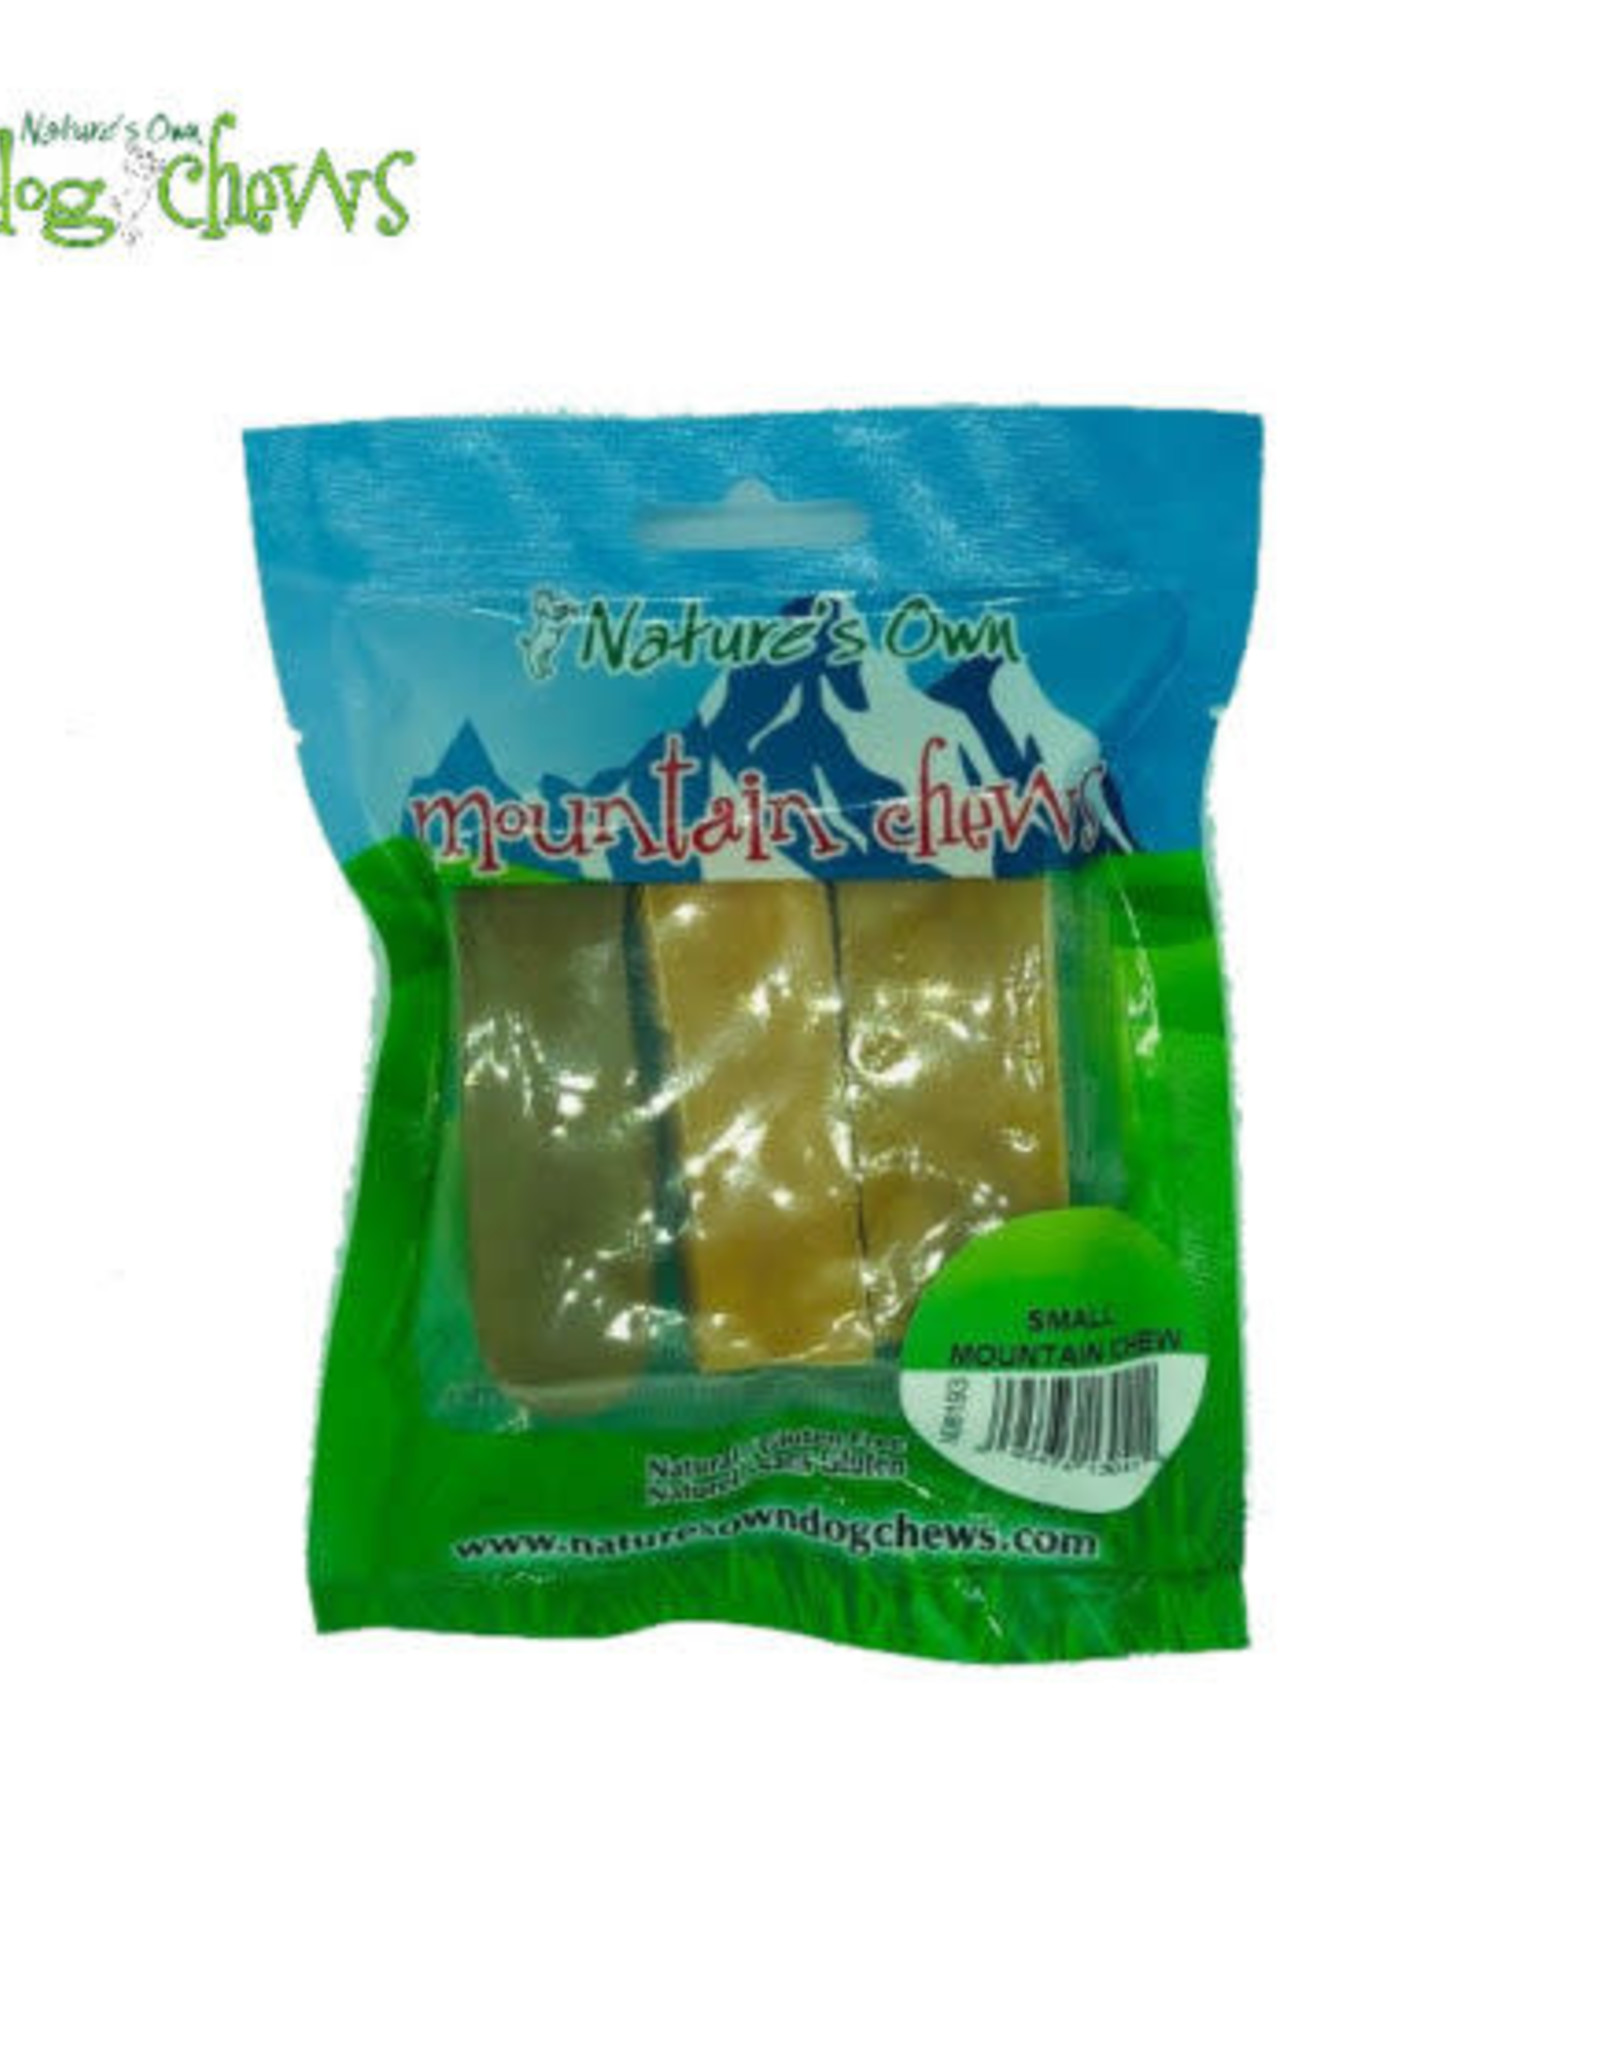 Nature's Own Nature's Own Mountain Chew  SM 3 PC